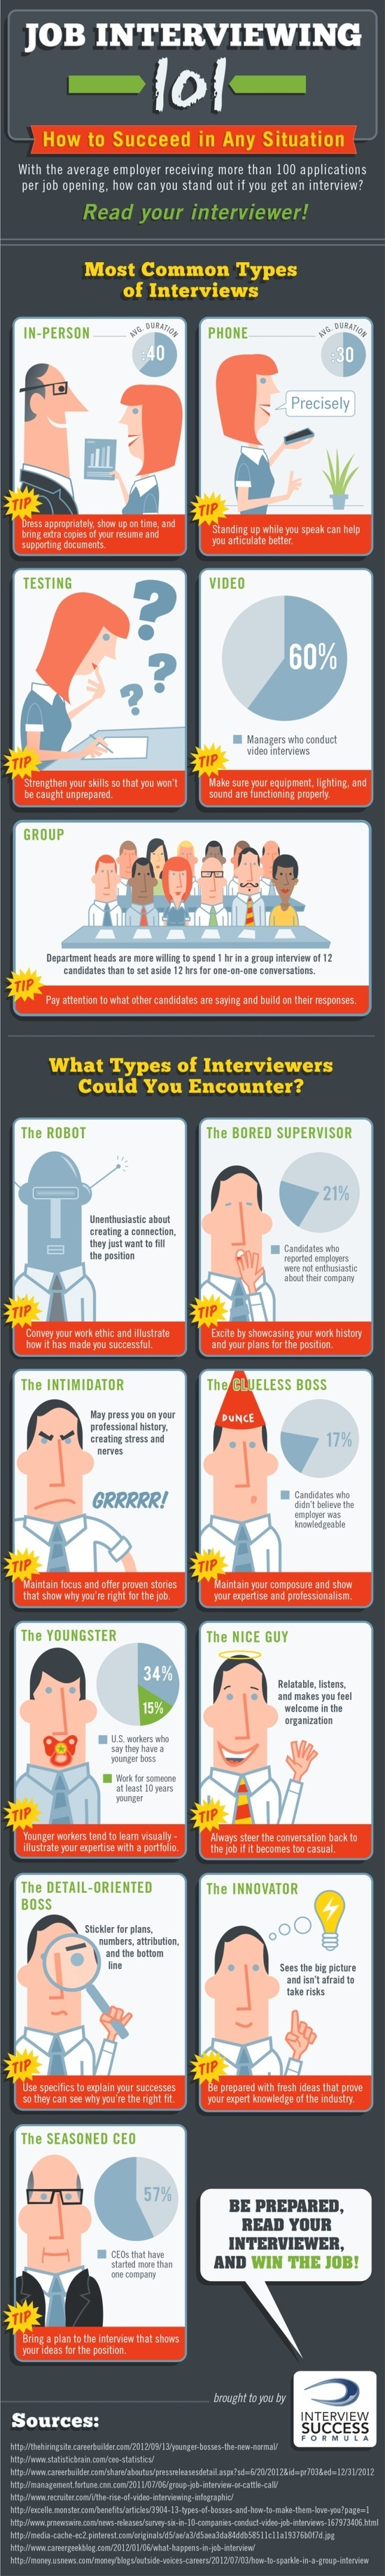 best images about job interview tips laziness job interviewing this infographic outlines the different types of interviews and the various versions of interviewers that come a long them